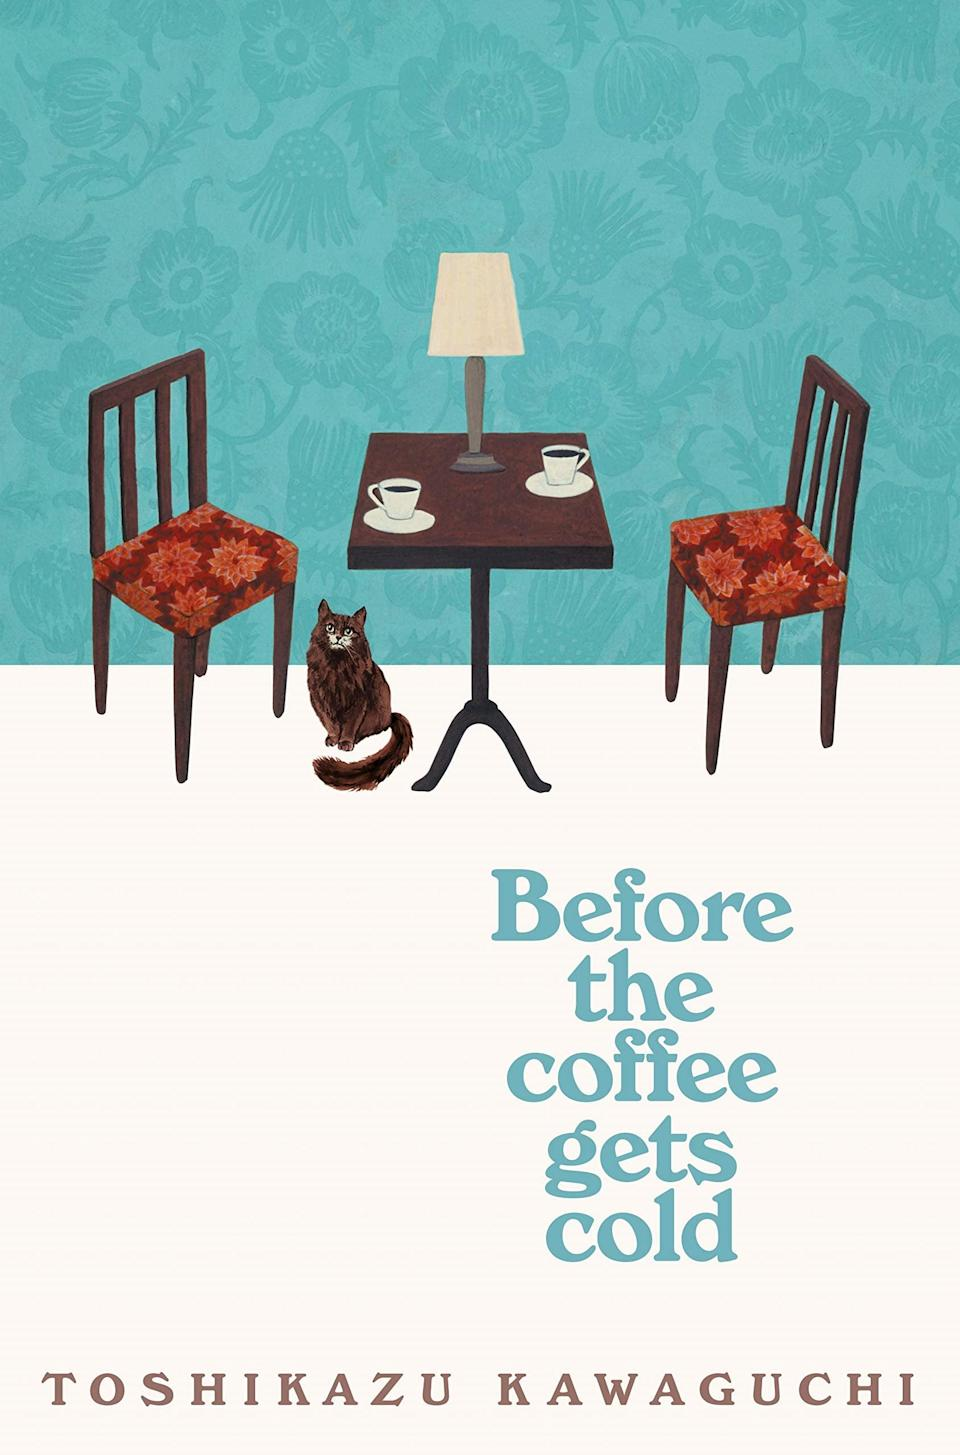 <p>Toshikazu Kawaguchi stages an age-old, thought-provoking question with a complex twist inside the novel <span><b>Before the Coffee Gets Cold</b></span>. This mysterious yet heartwarming read gives a glimpse toward the chance of time travel to explore the possibility of revisiting the past for as long as it takes for a cup of coffee to get cold.</p>